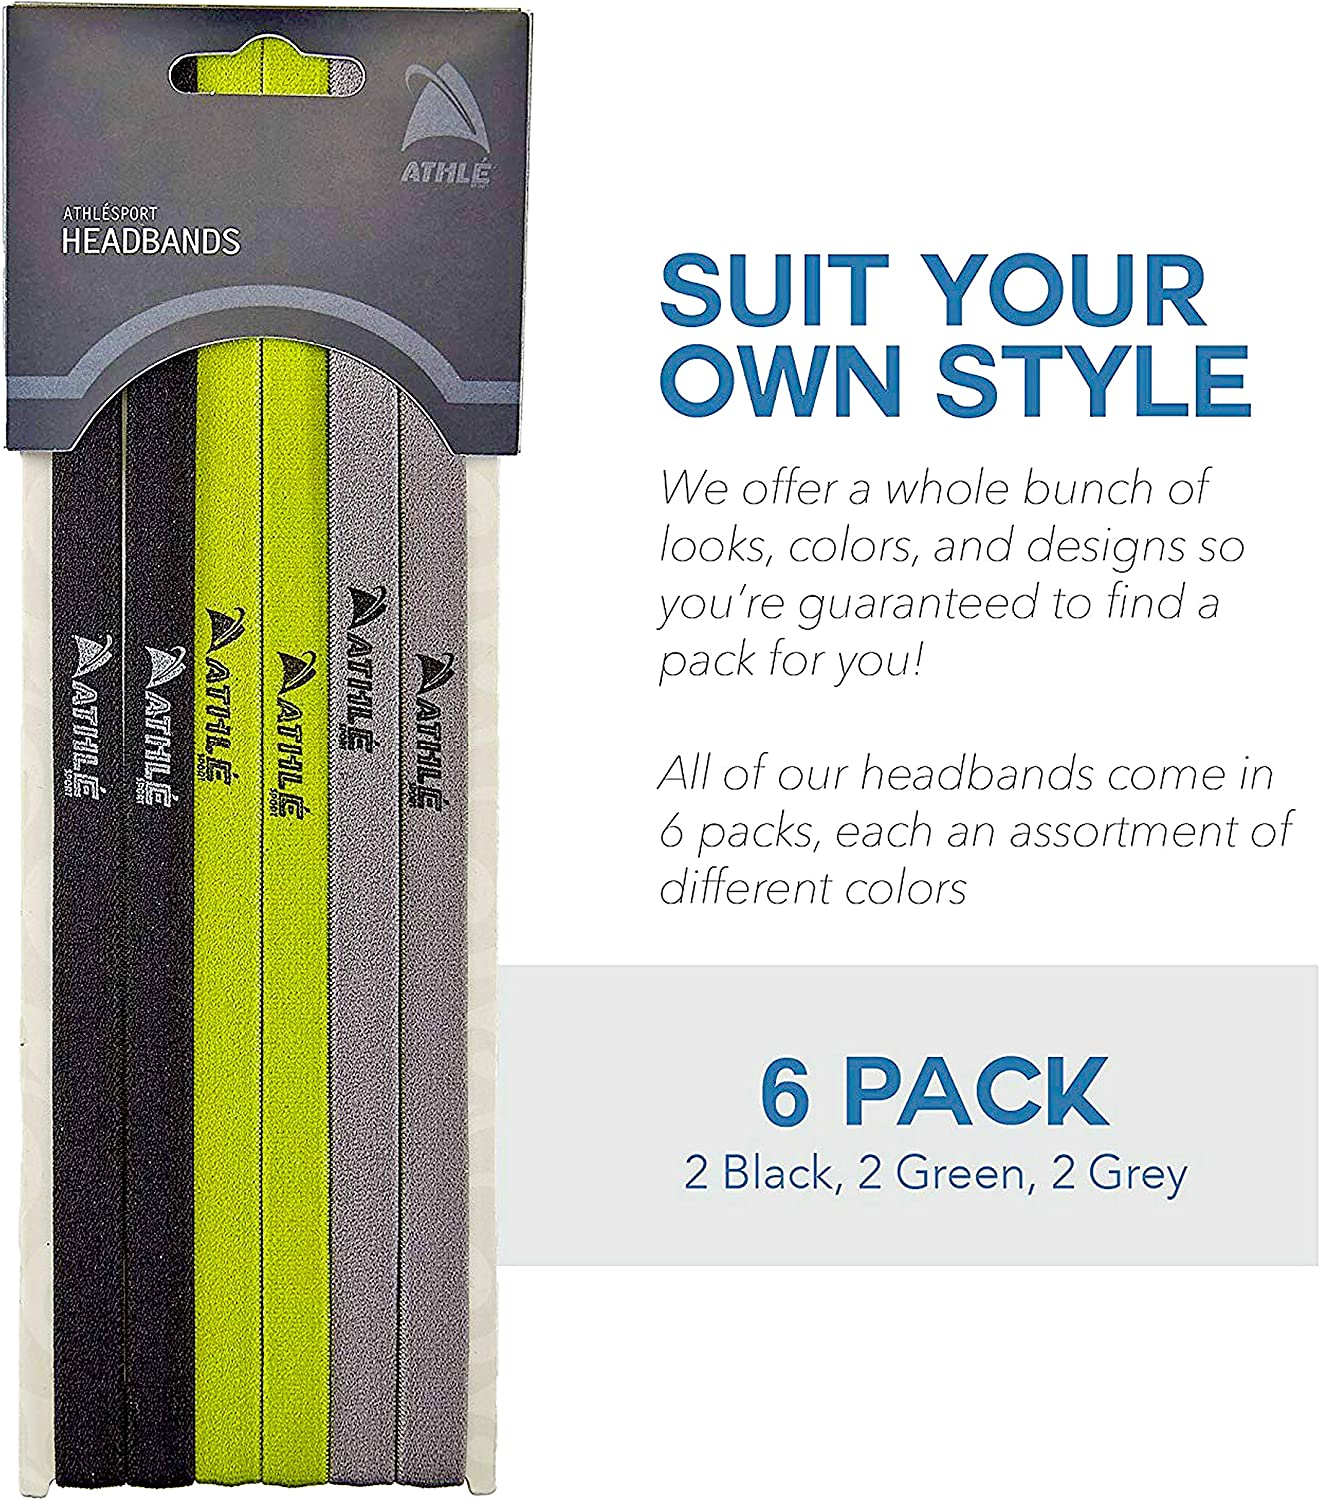 Athle Skinny Sports Headbands 6 Pack Men/'s and Women/'s Elastic Hair Bands with Non Slip Silicone Grip Lightweight and Comfortable Sweatbands Keep You Cool and Dry